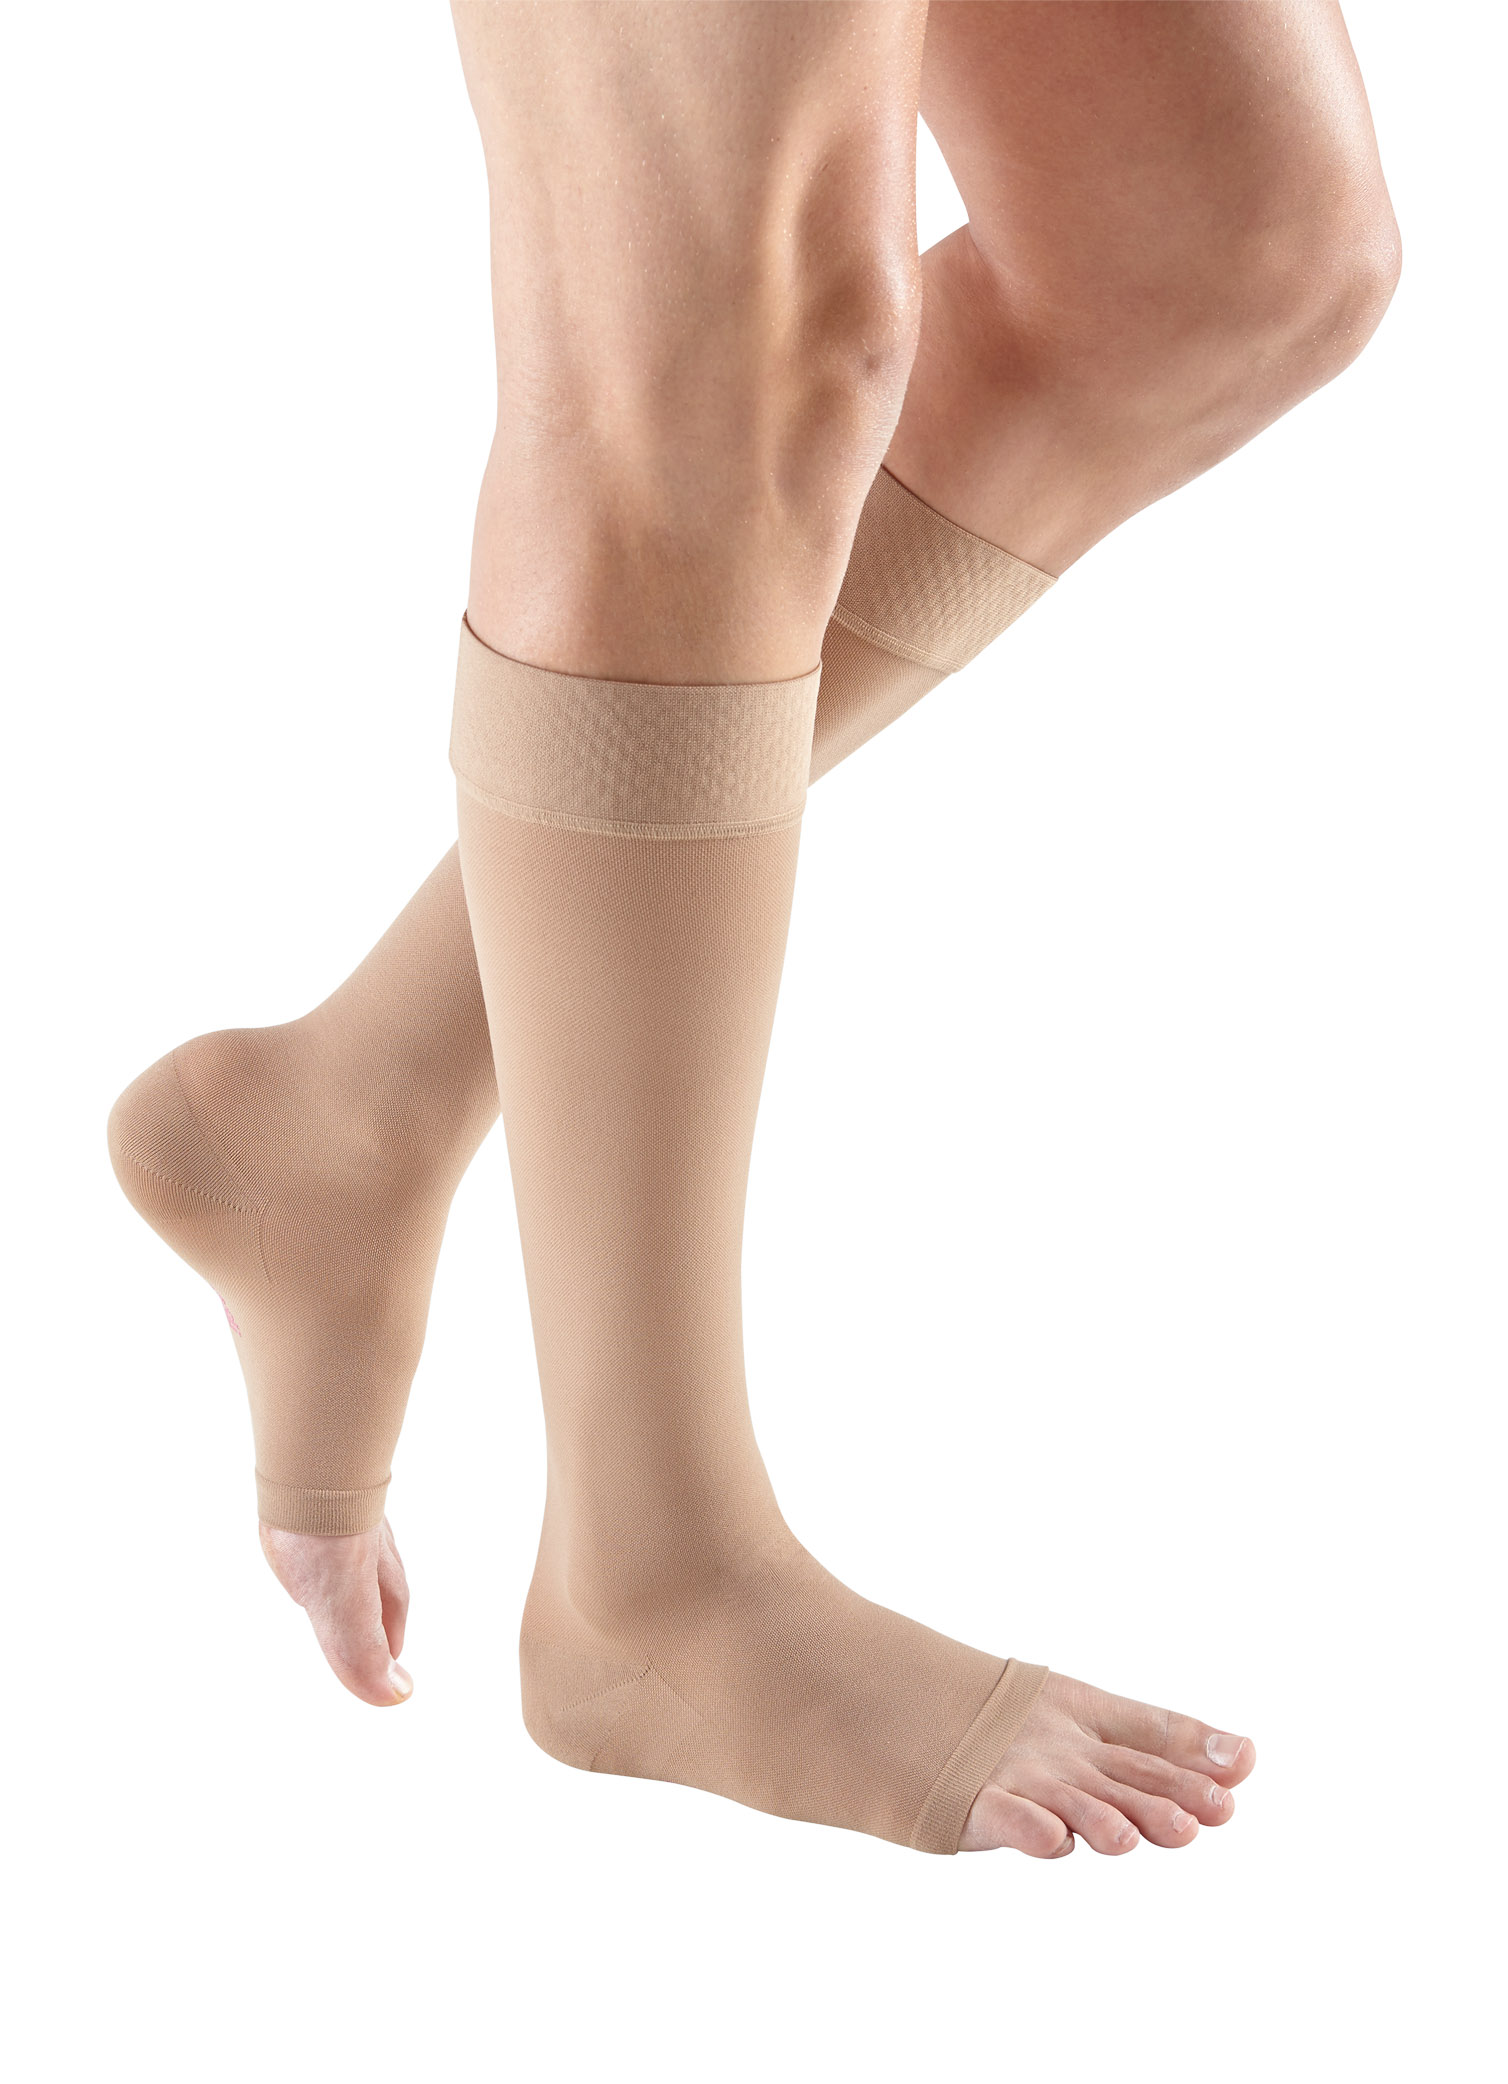 e84f320a66d mediven-plus-20-30-mmhg-open-toe-extra-wide-calf-knee-highs -w-silicone-top-band-134-beige.jpg